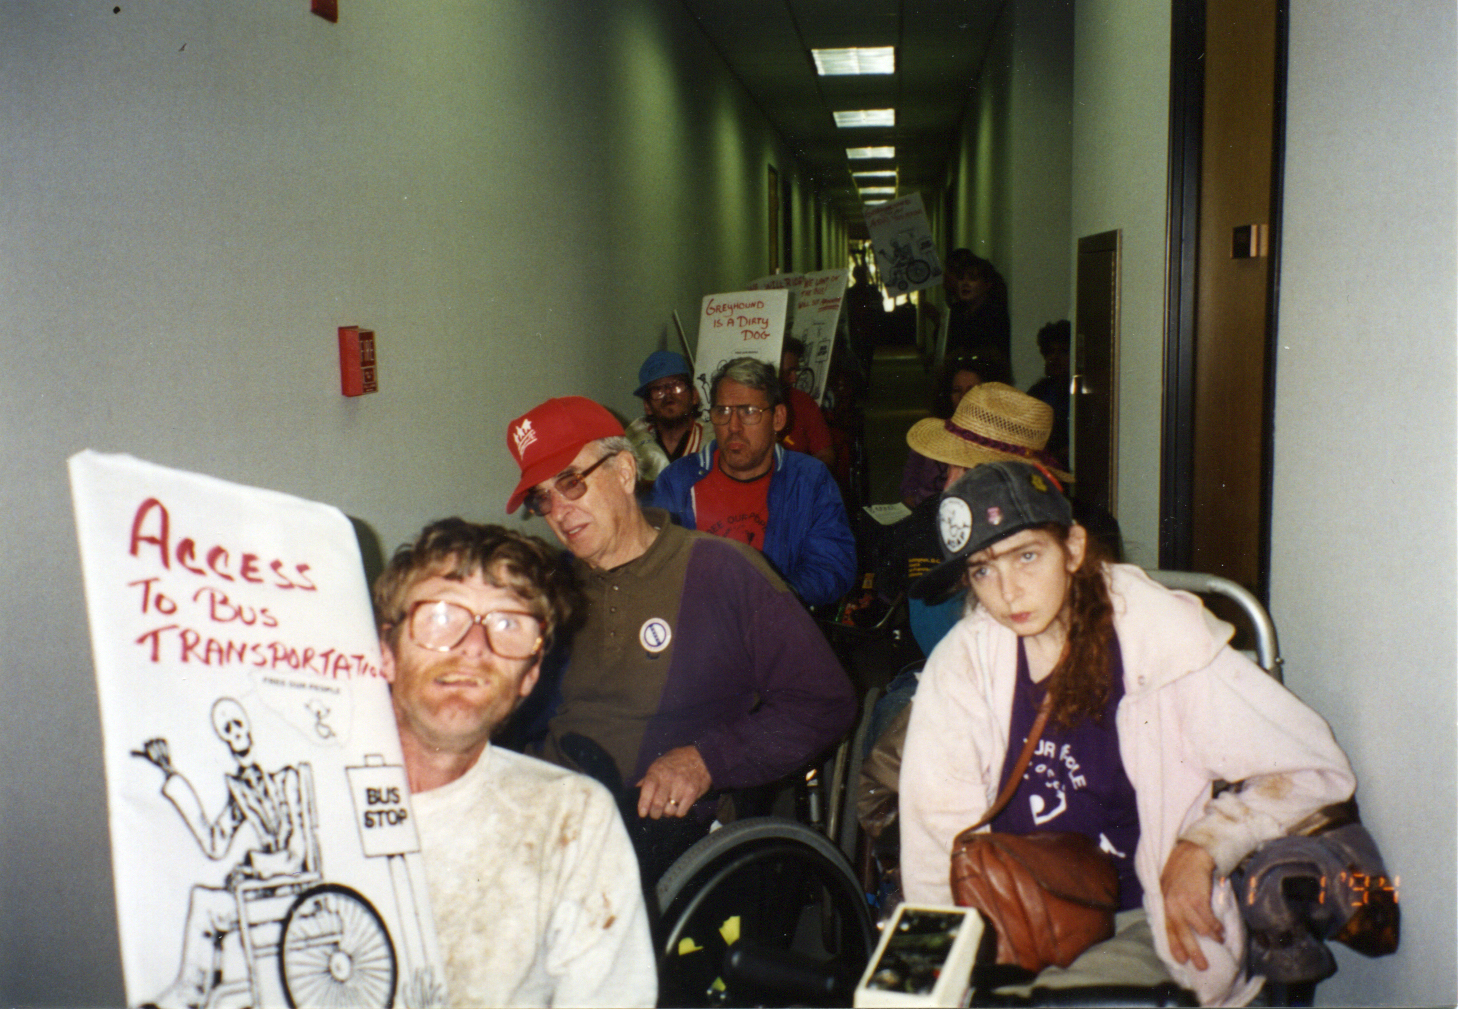 Sparky Metz, George Cooper and Rona Schnall along with other TX ADAPTers line the hallway demanding more community services. Sparky holds the Tired of Waiting skeleton in a wheelchair poster.